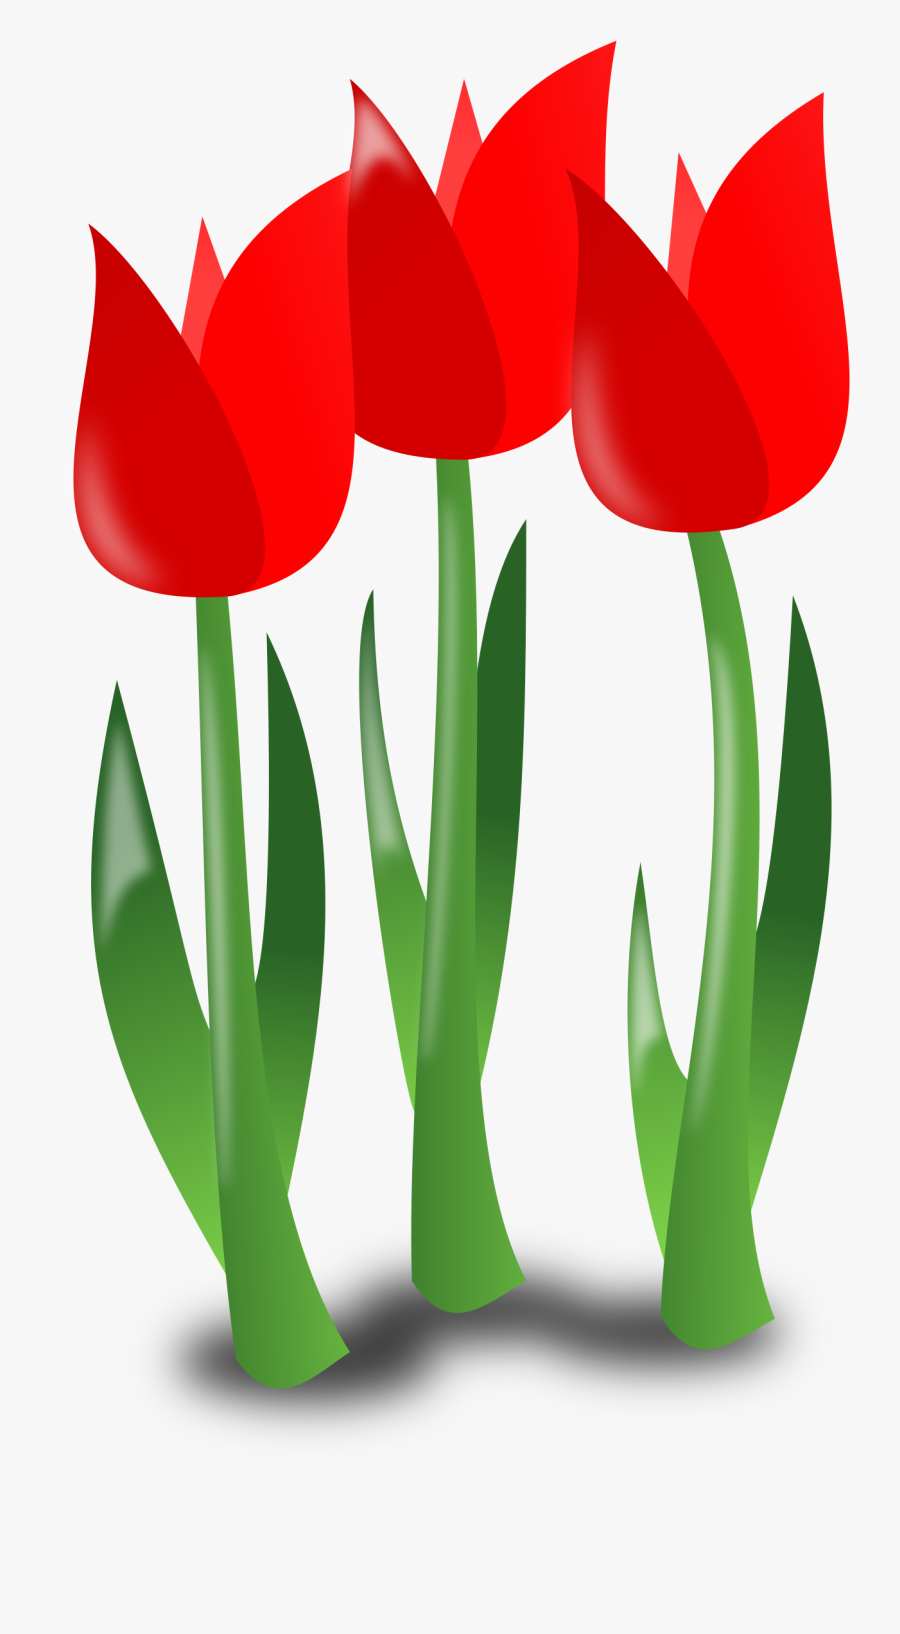 Mothers Clipart Mothers Day Flower - Flower Cartoon Mothers Day, Transparent Clipart